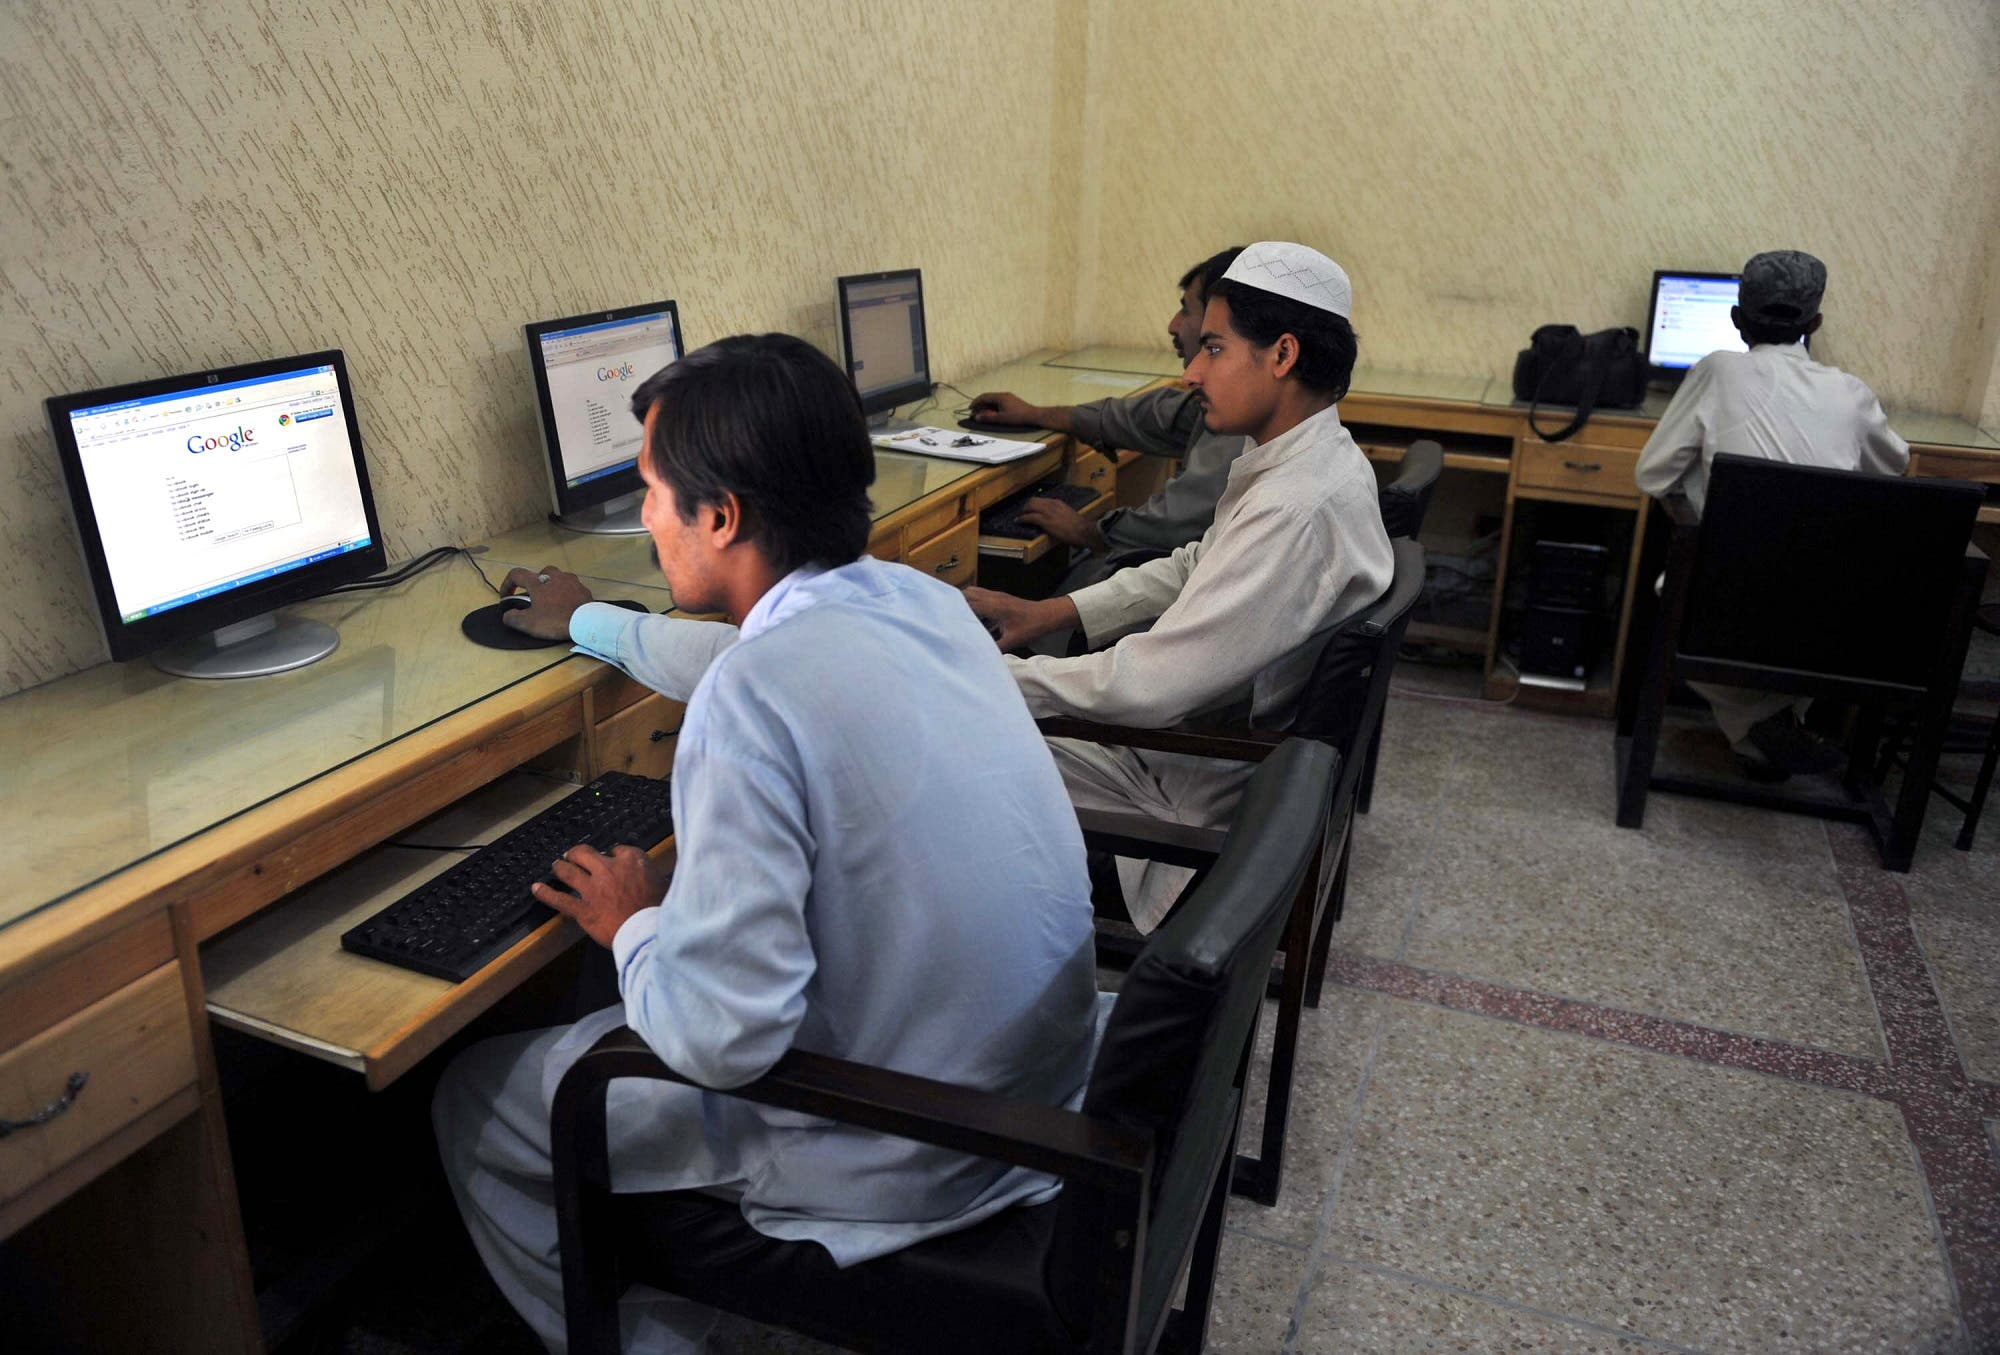 Pakistani journalists browse the internet in Peshawar on May 31, 2010. (AFP)